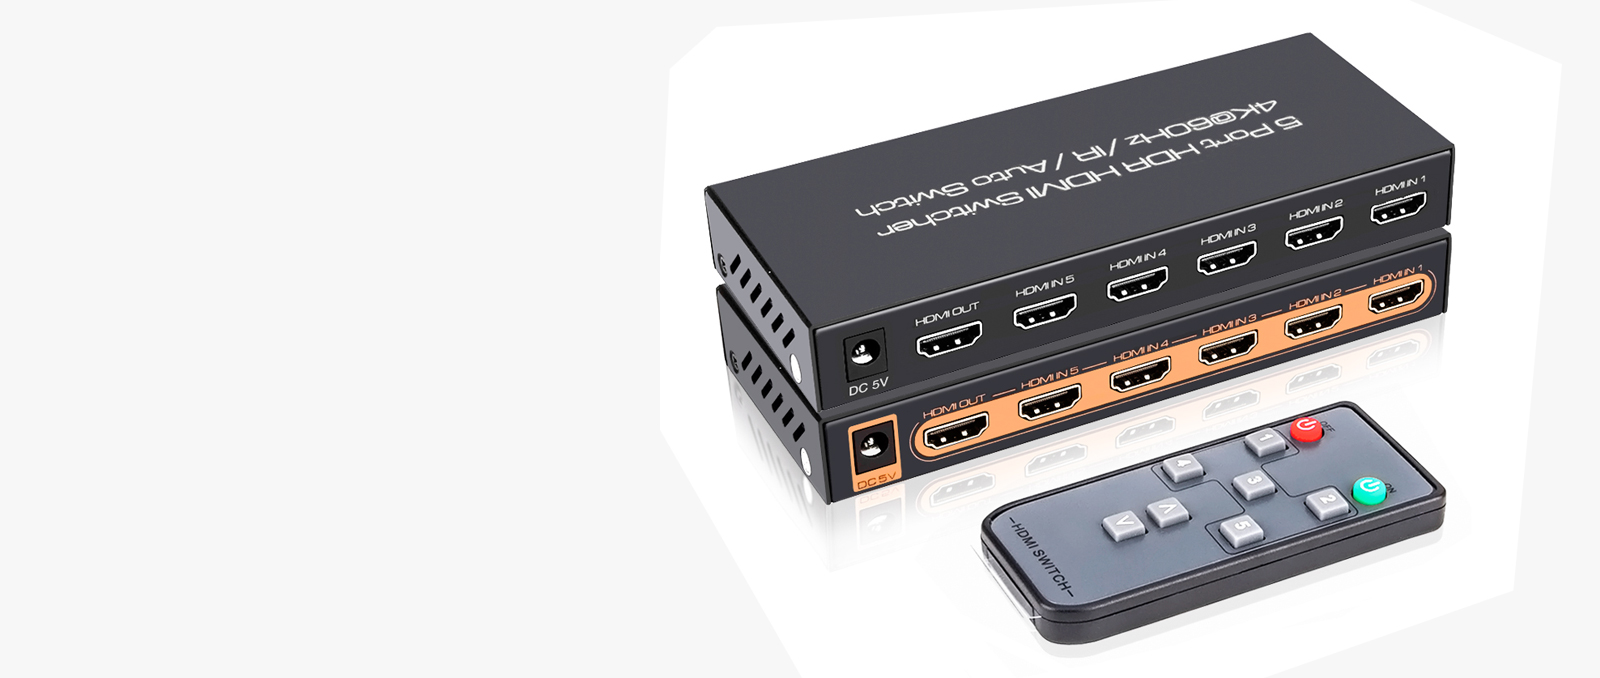 ROOFULL-HDMI-2.0-HDR-SWITCH-SWITCHER-4K-60HZ-HDCP-2.2